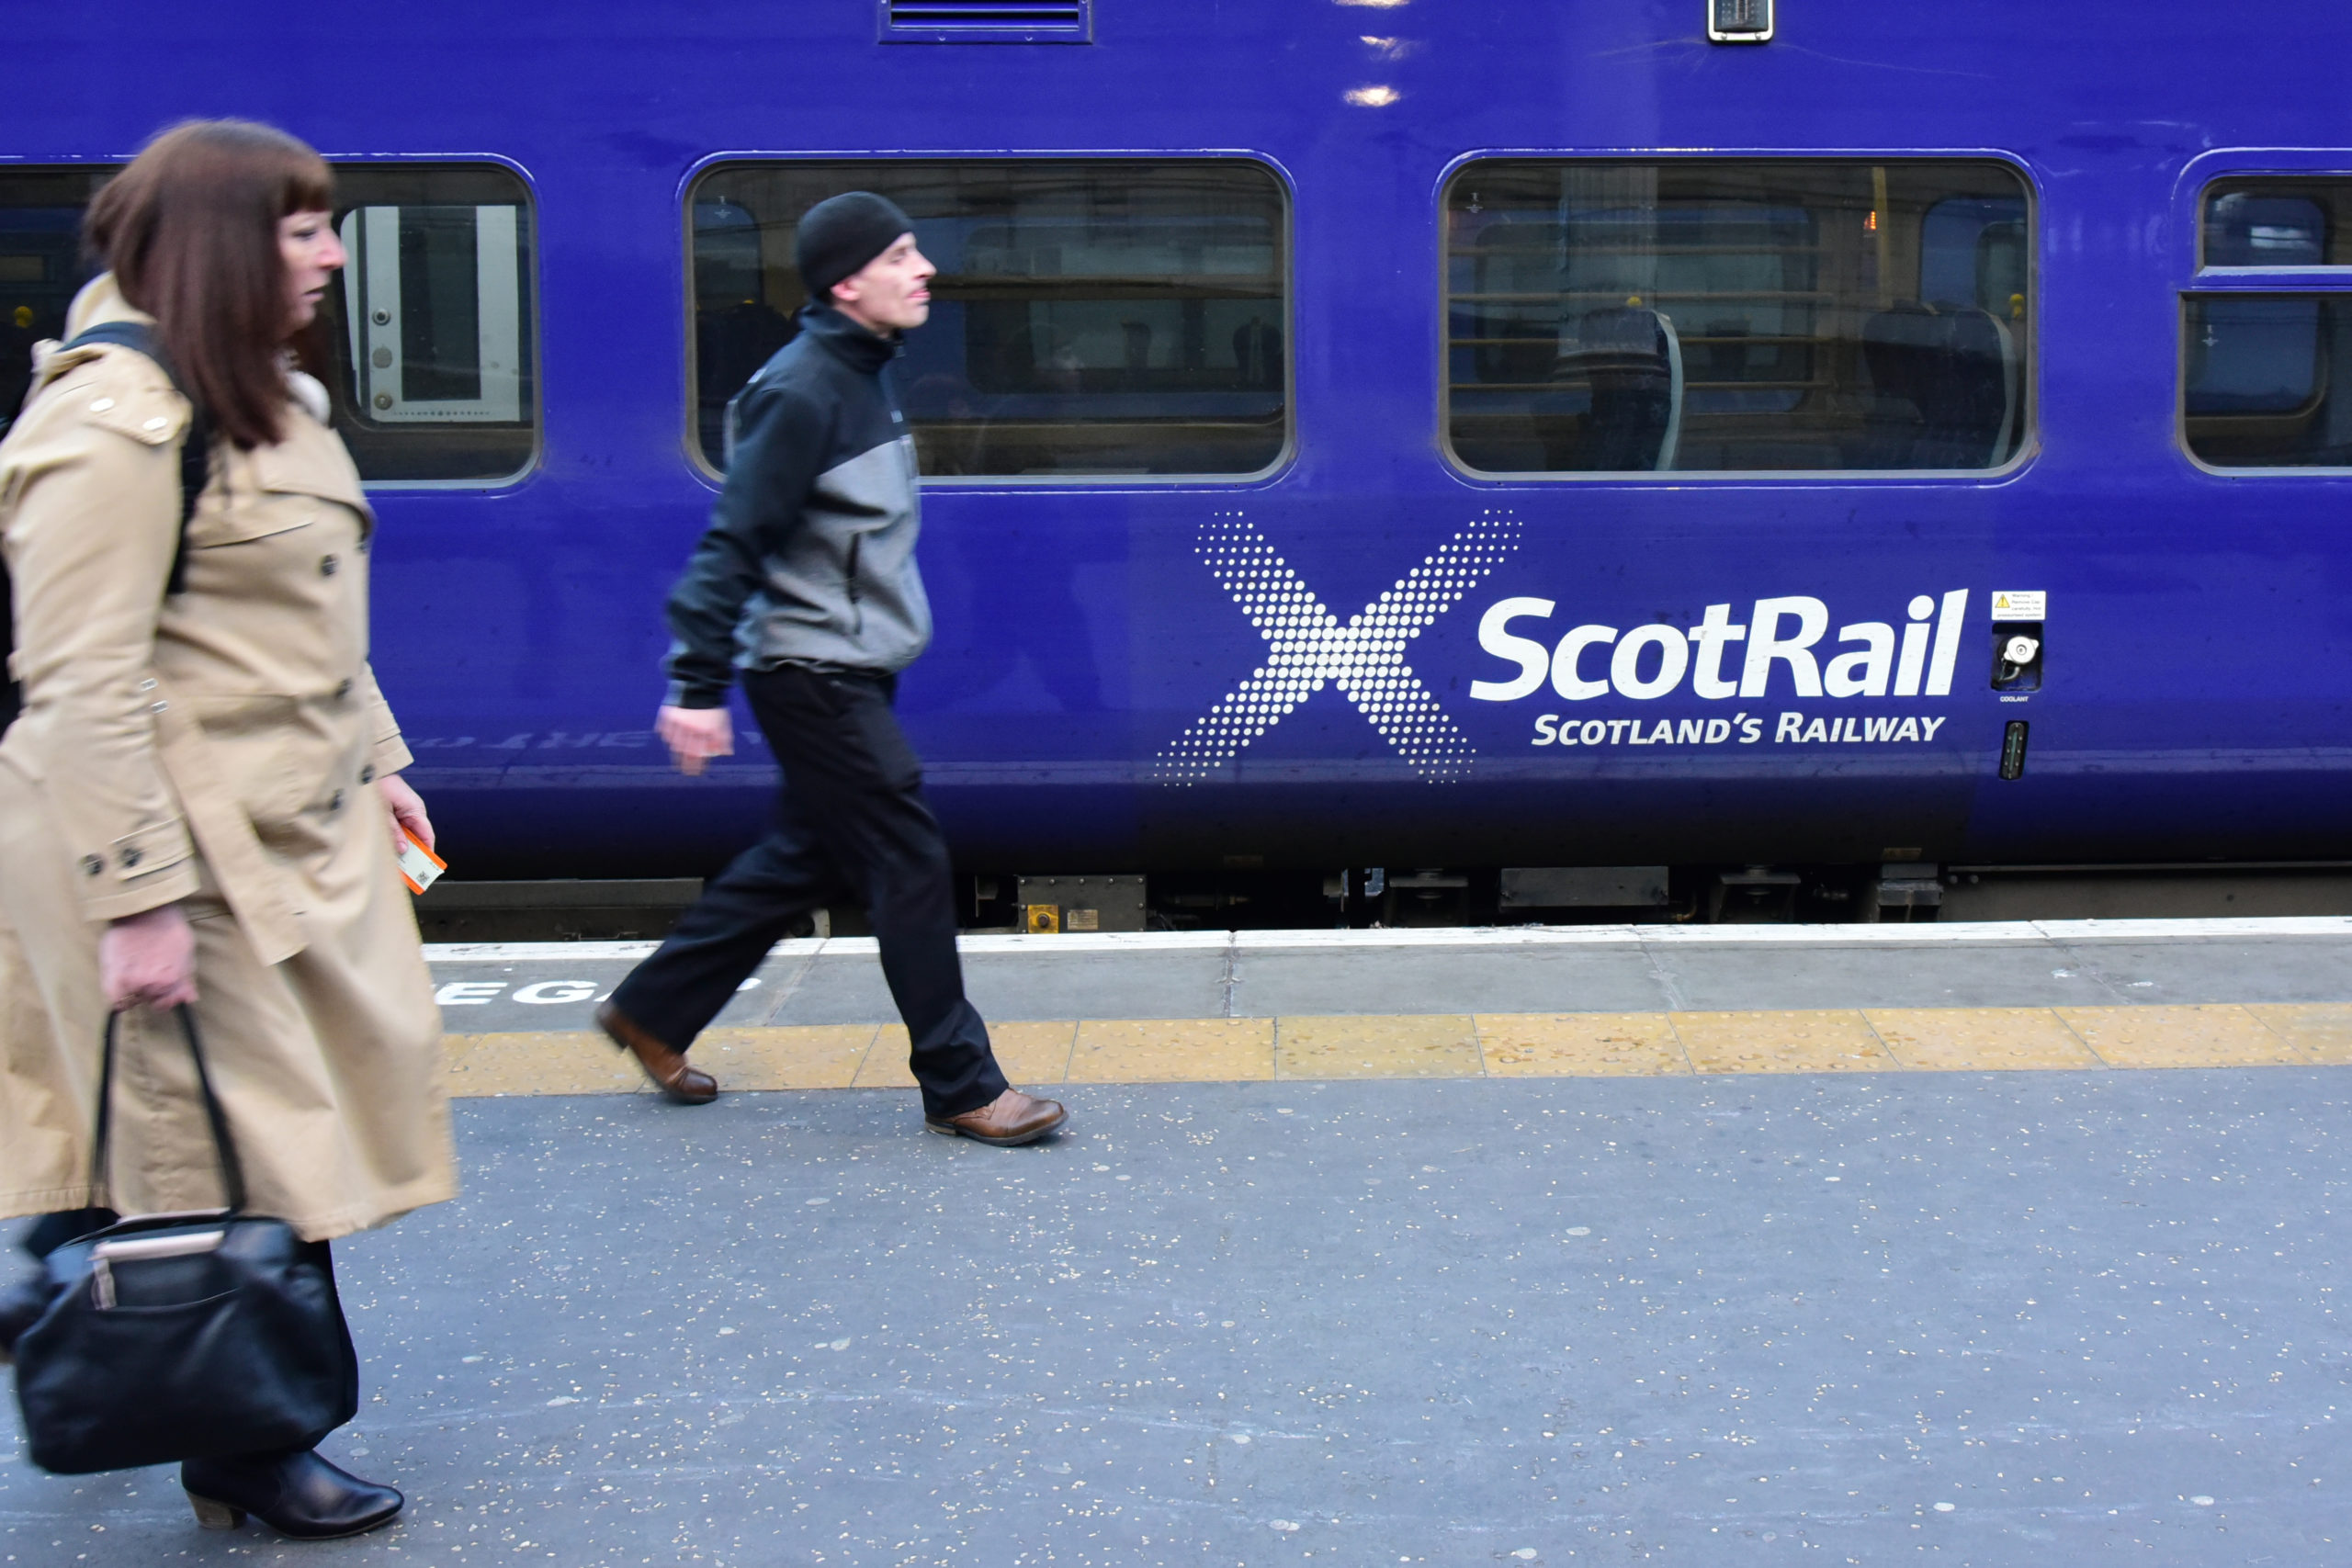 It's no surprise that ScotRail reacted